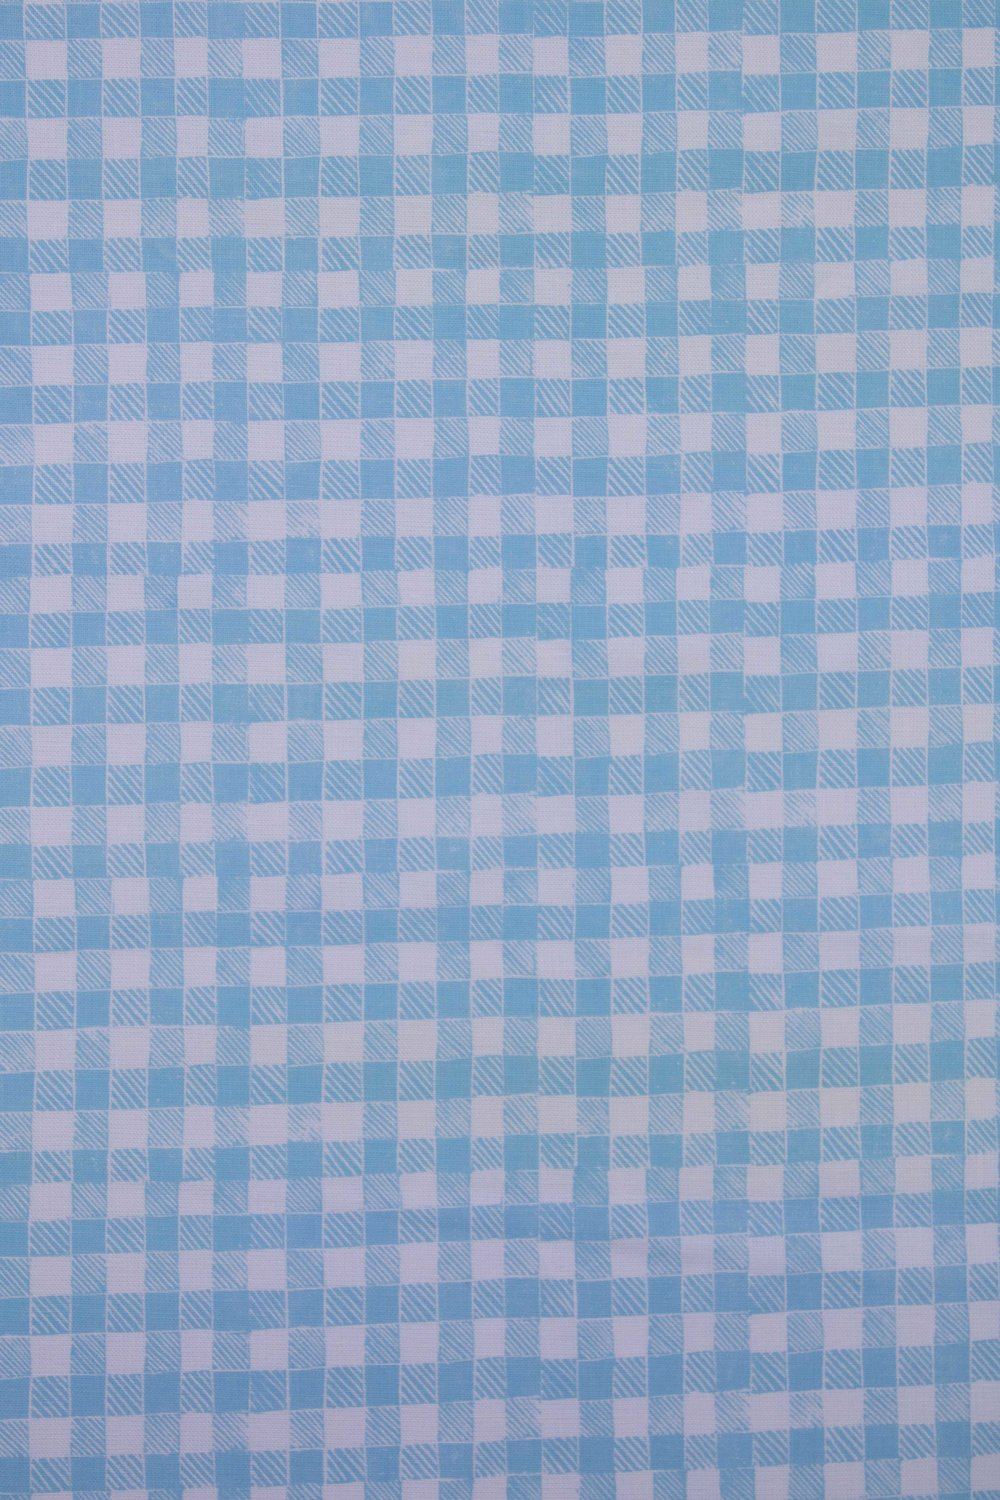 Block Print Gingham in Light Blue, KF250-03